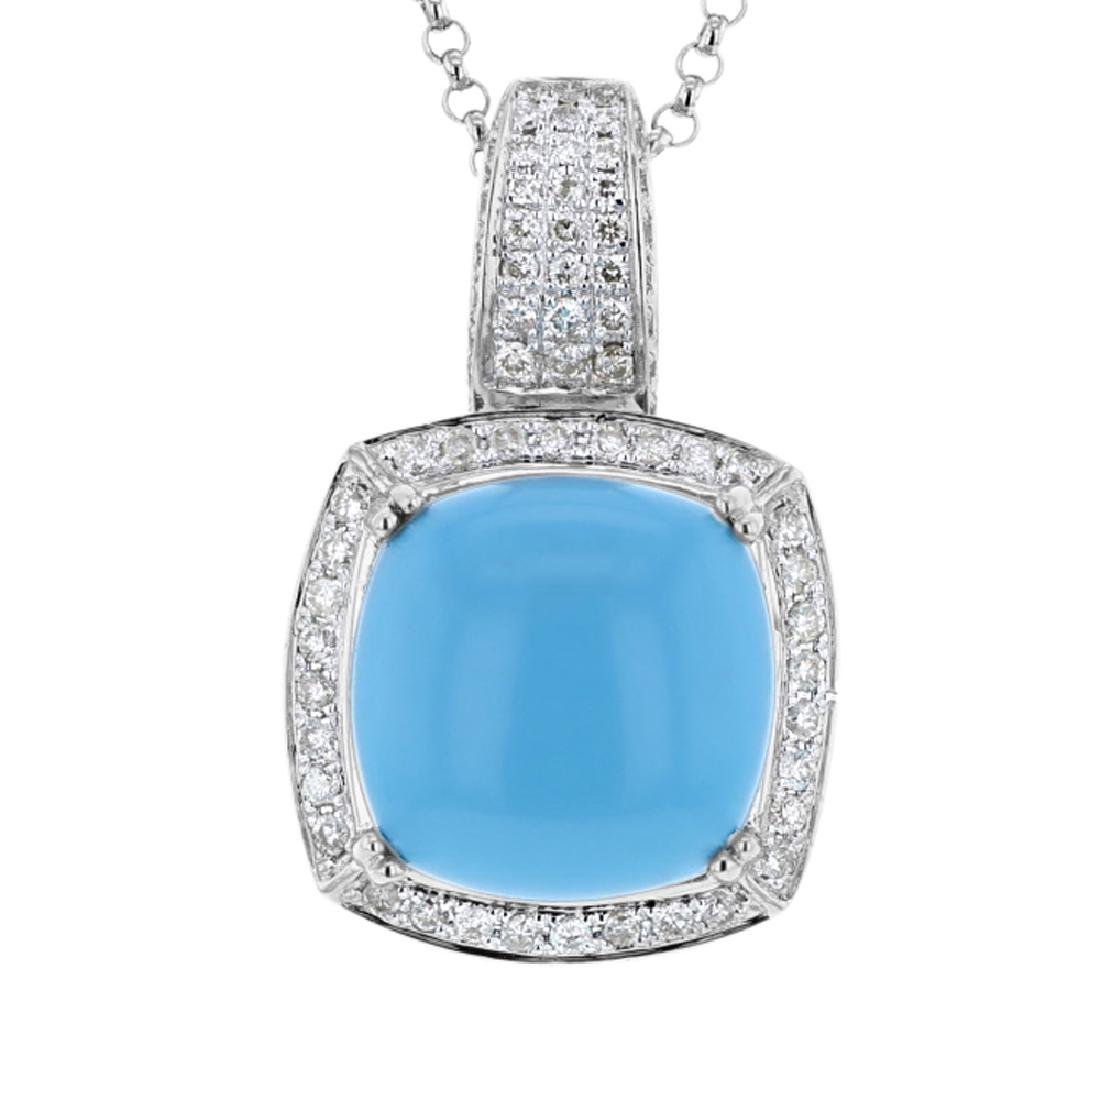 14KT White Gold 9.91ct Turquoise and Diamond Pendant